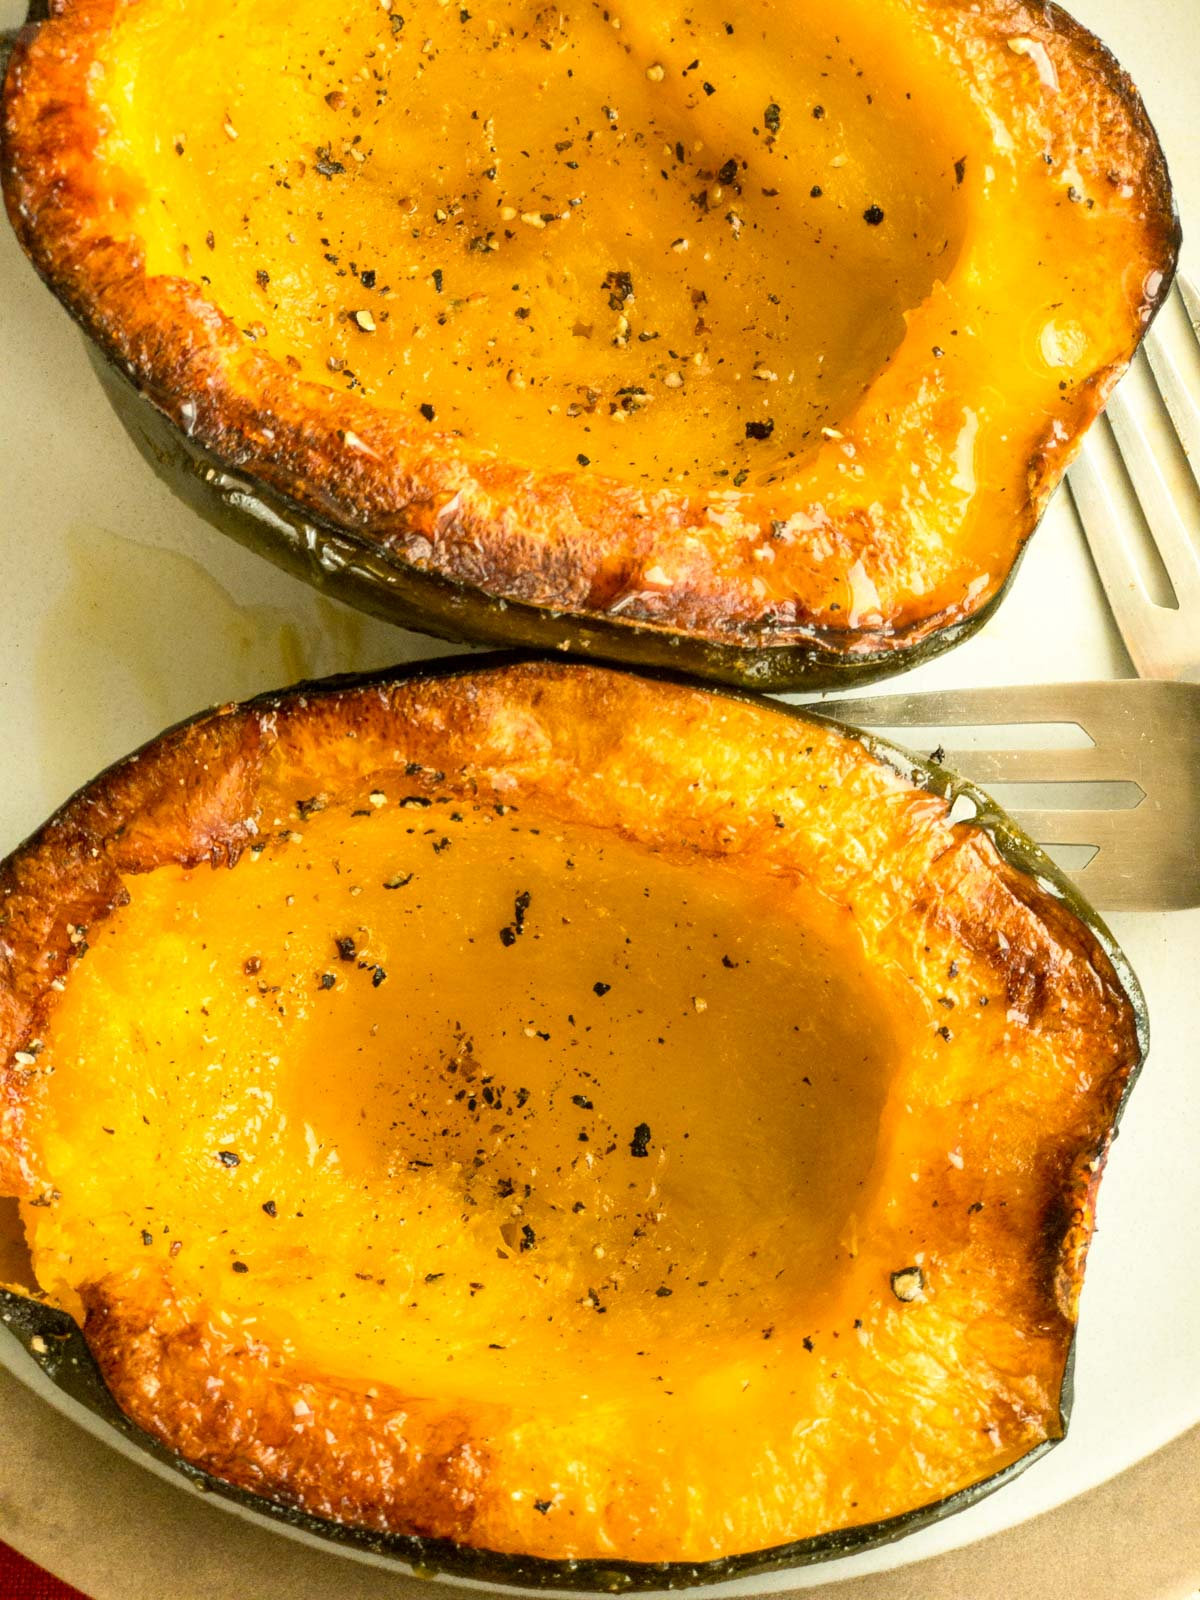 Roasted acorn squash halves on a plate